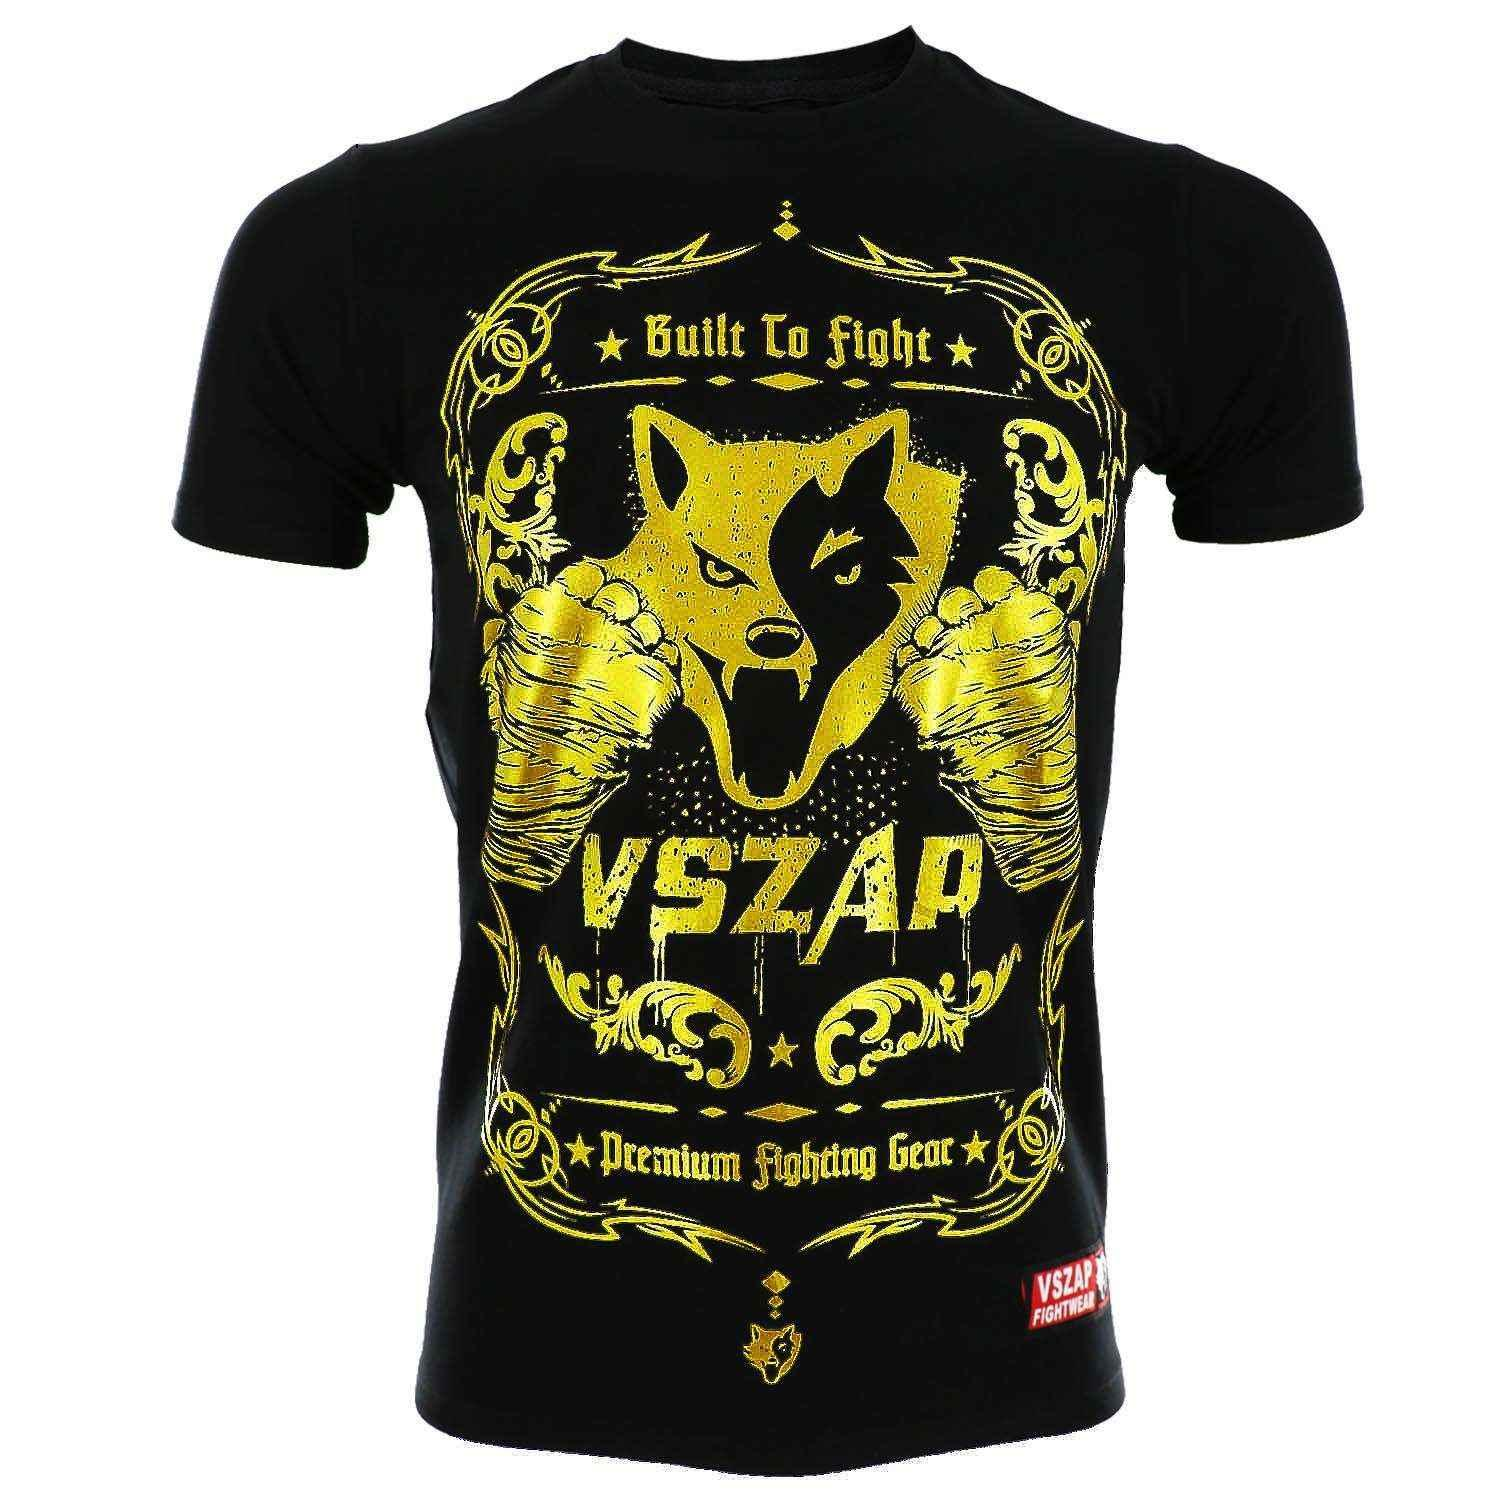 Black t shirt with gold design - Vszap Built To Fight Gold Mma T Shirt Fight Muay Thai Male Combat Exercise Training T Shirt Mma Design Shirts Cool Tshirts From Hithotwin 17 63 Dhgate